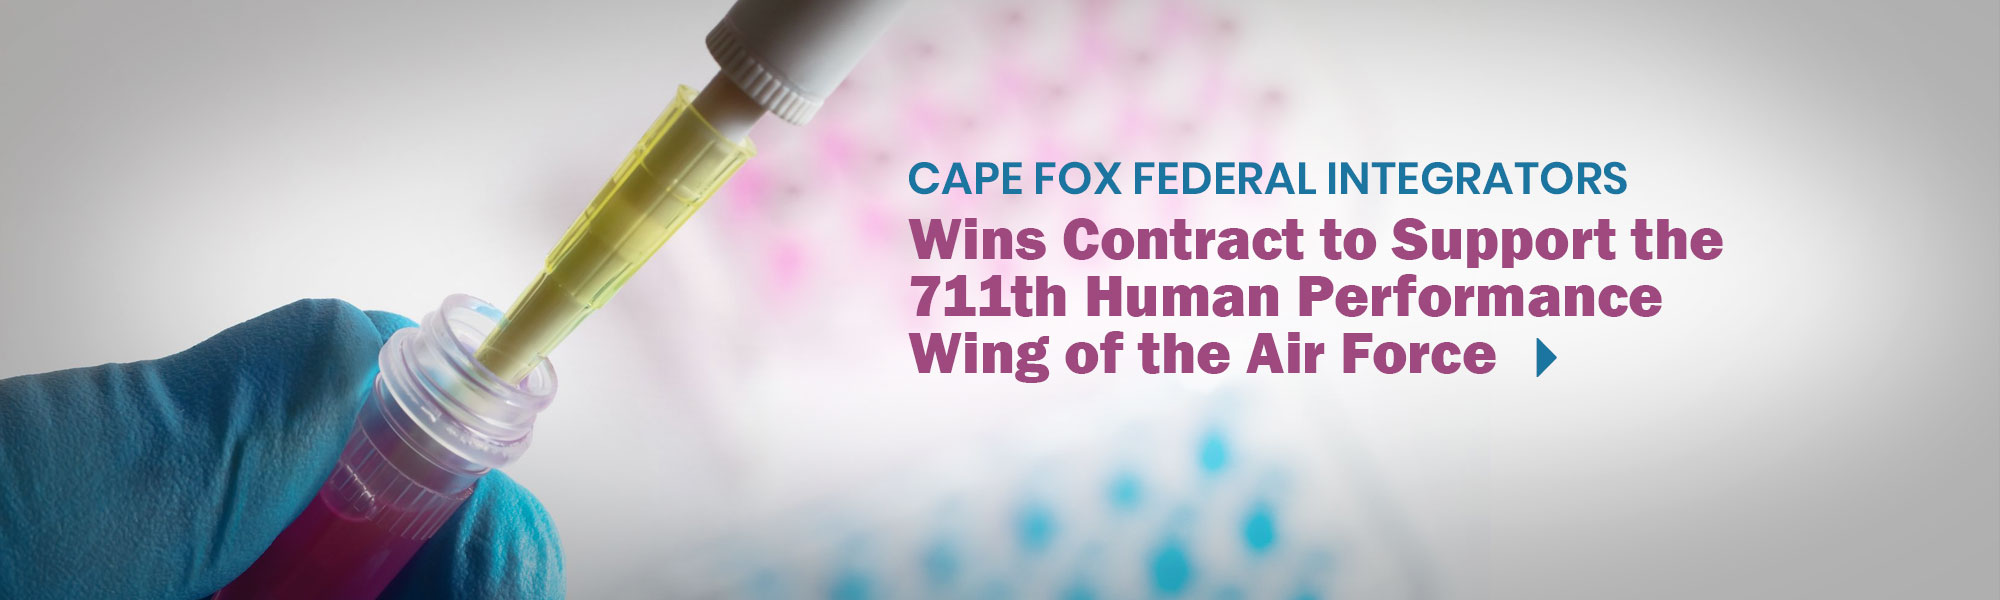 CFFI Wins Contract to Support the 711th Human Performance Wing of the Air Force